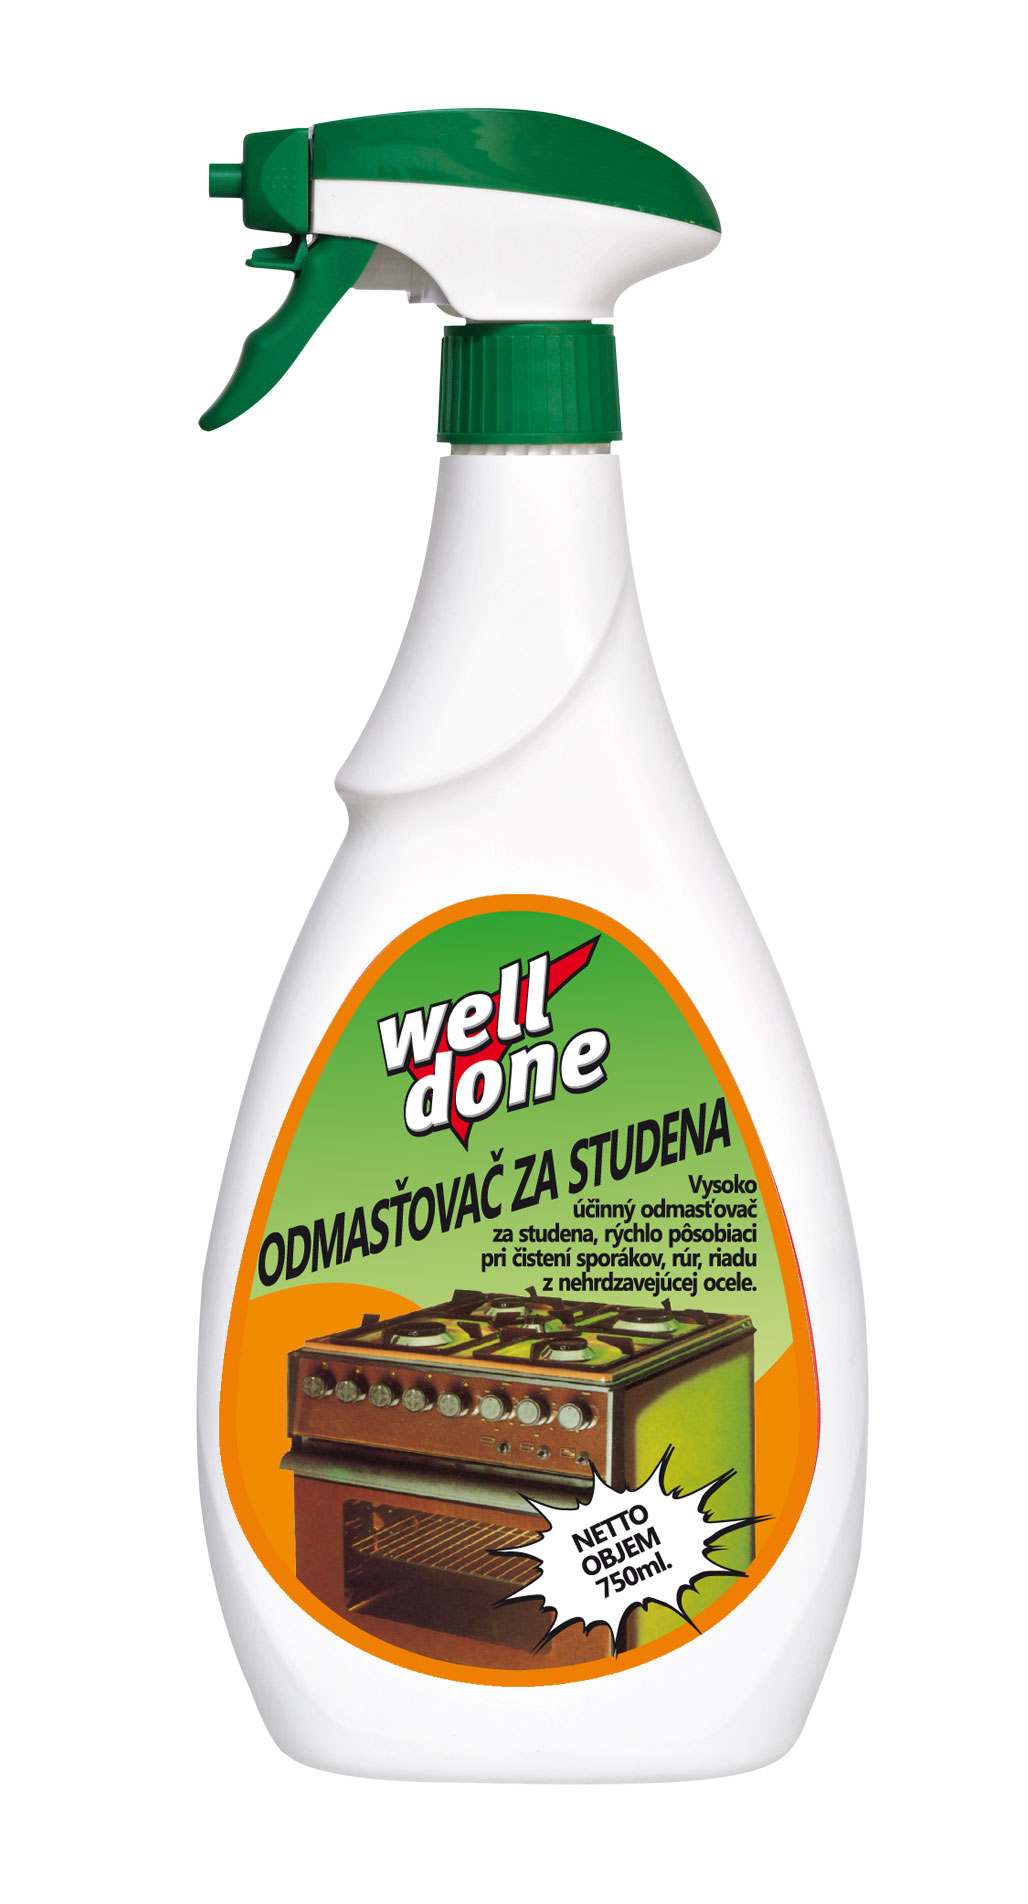 Well Done - Odmašťovač za studena 750ml